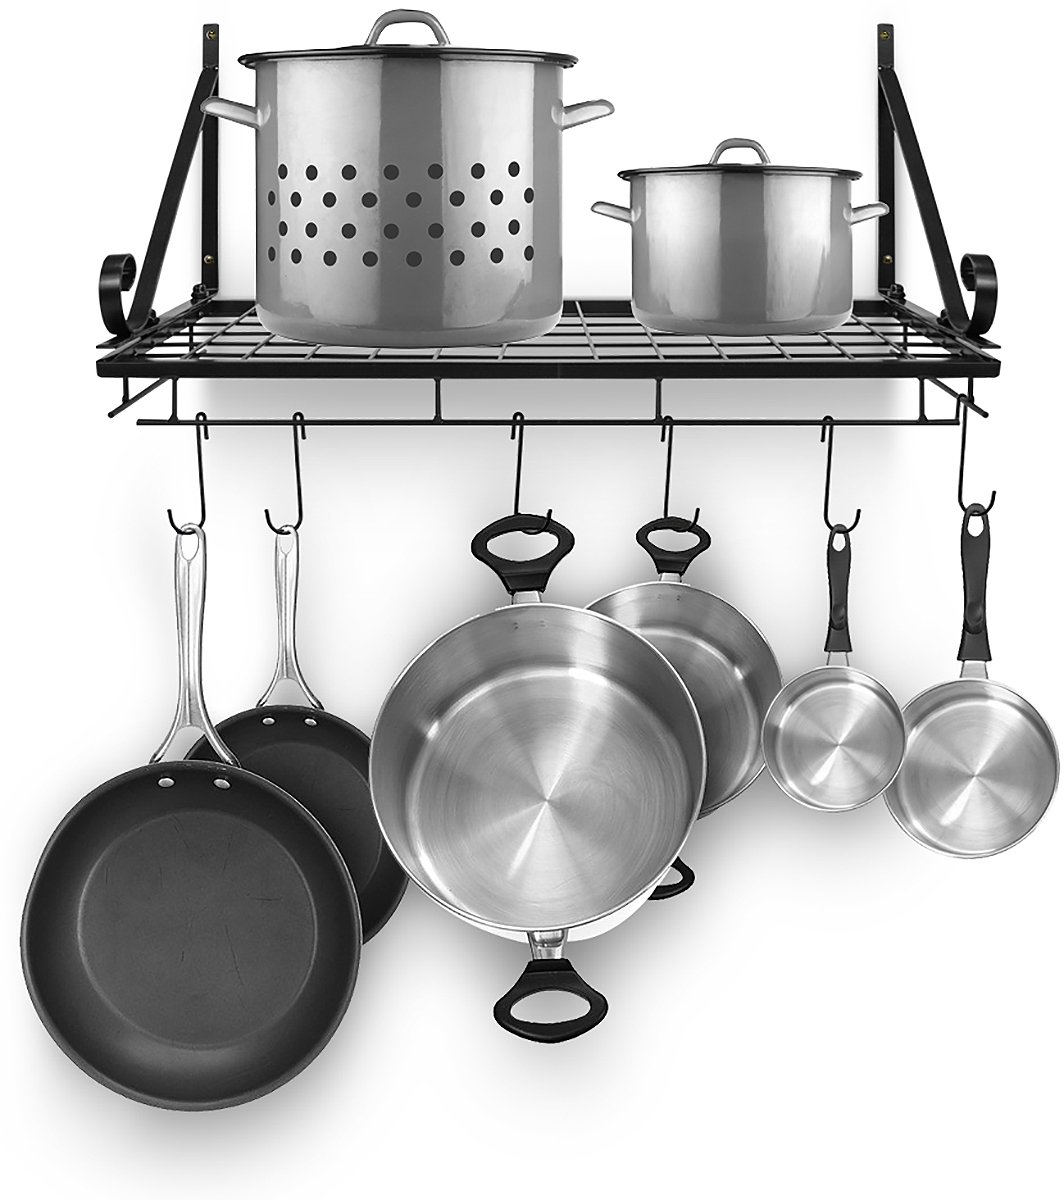 Sorbus Pots and Pan Rack - Decorative Wall Mounted Storage Hanging Rack - Multipurpose Wrought-Iron shelf Organizer for Kitchen Cookware, Utensils, Pans, Books, Bathroom (Wall Rack - Black) by Sorbus